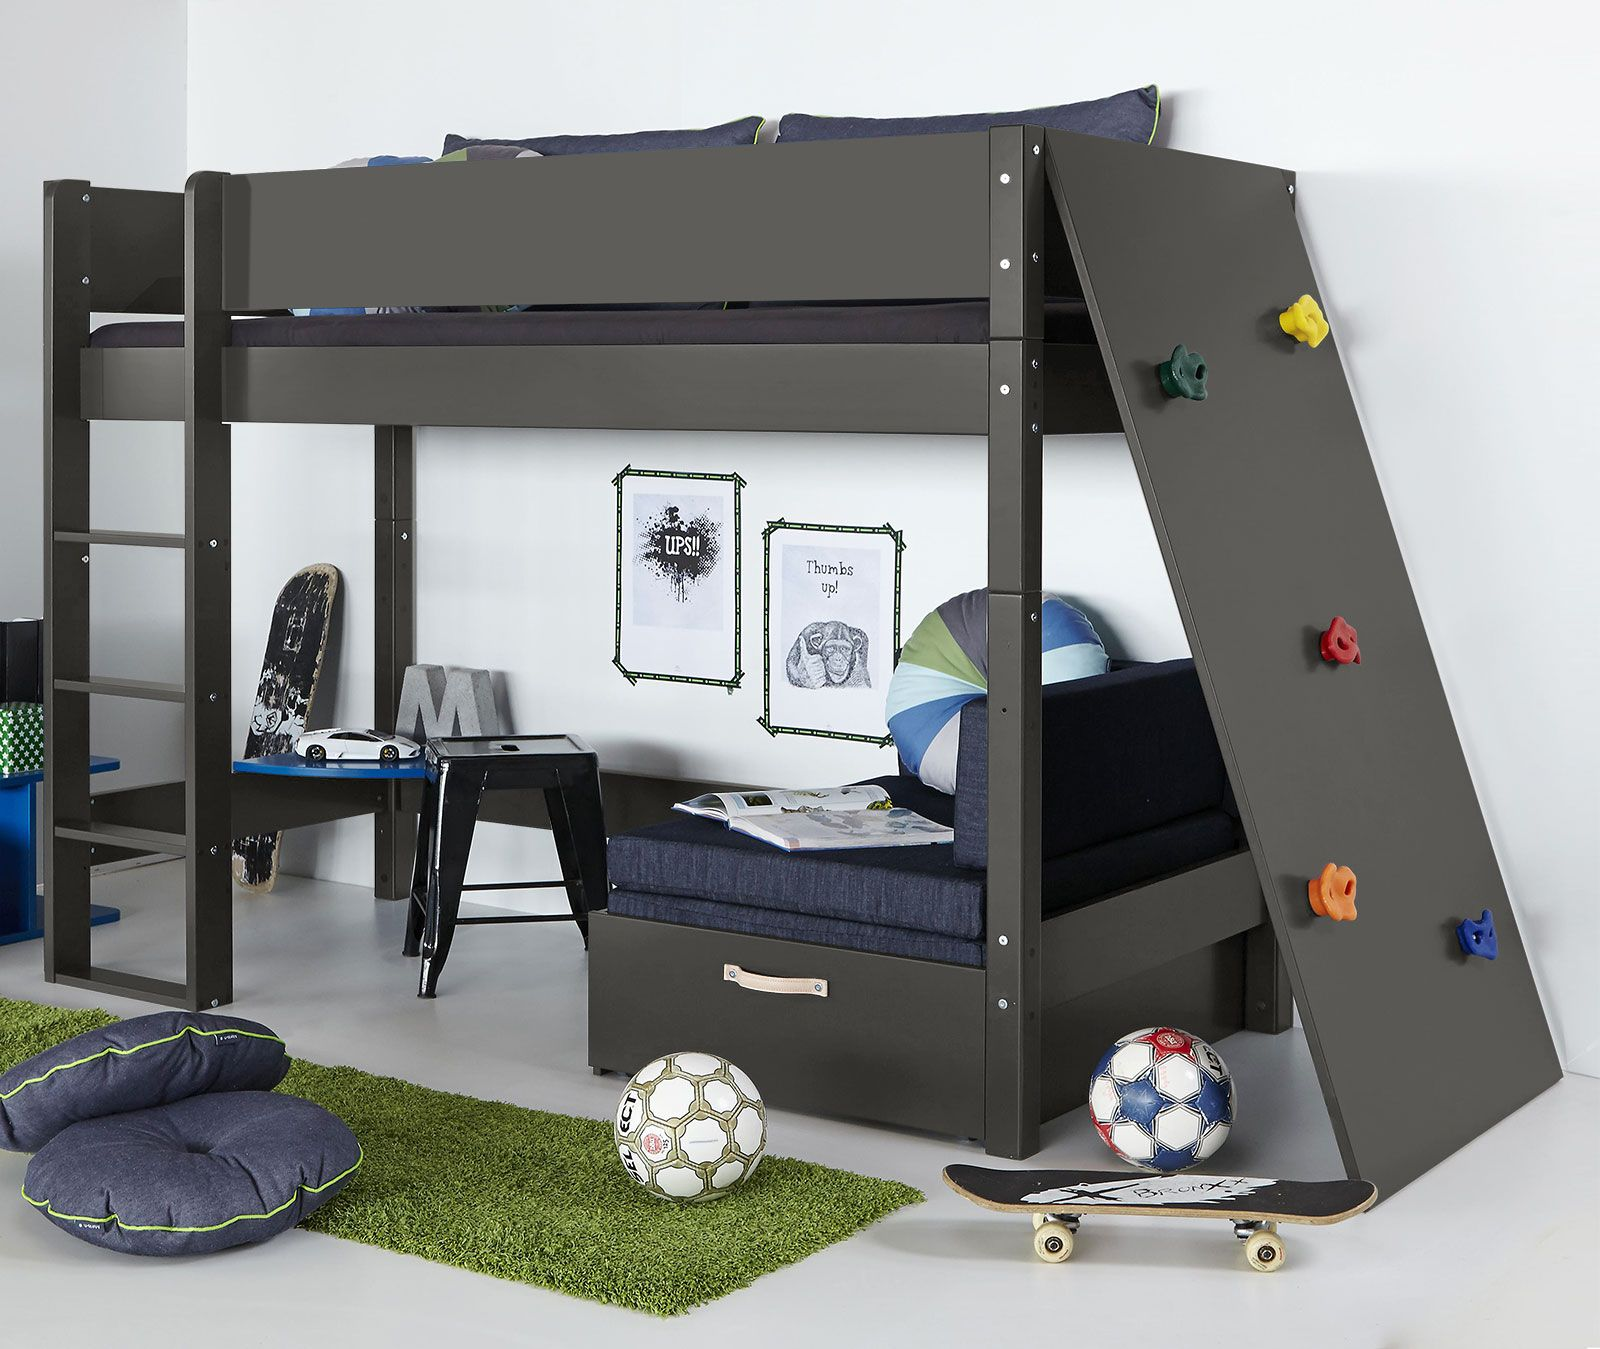 midi hochbett kids town mit kletterwand bed marij pinterest kletterwand hochbetten und. Black Bedroom Furniture Sets. Home Design Ideas